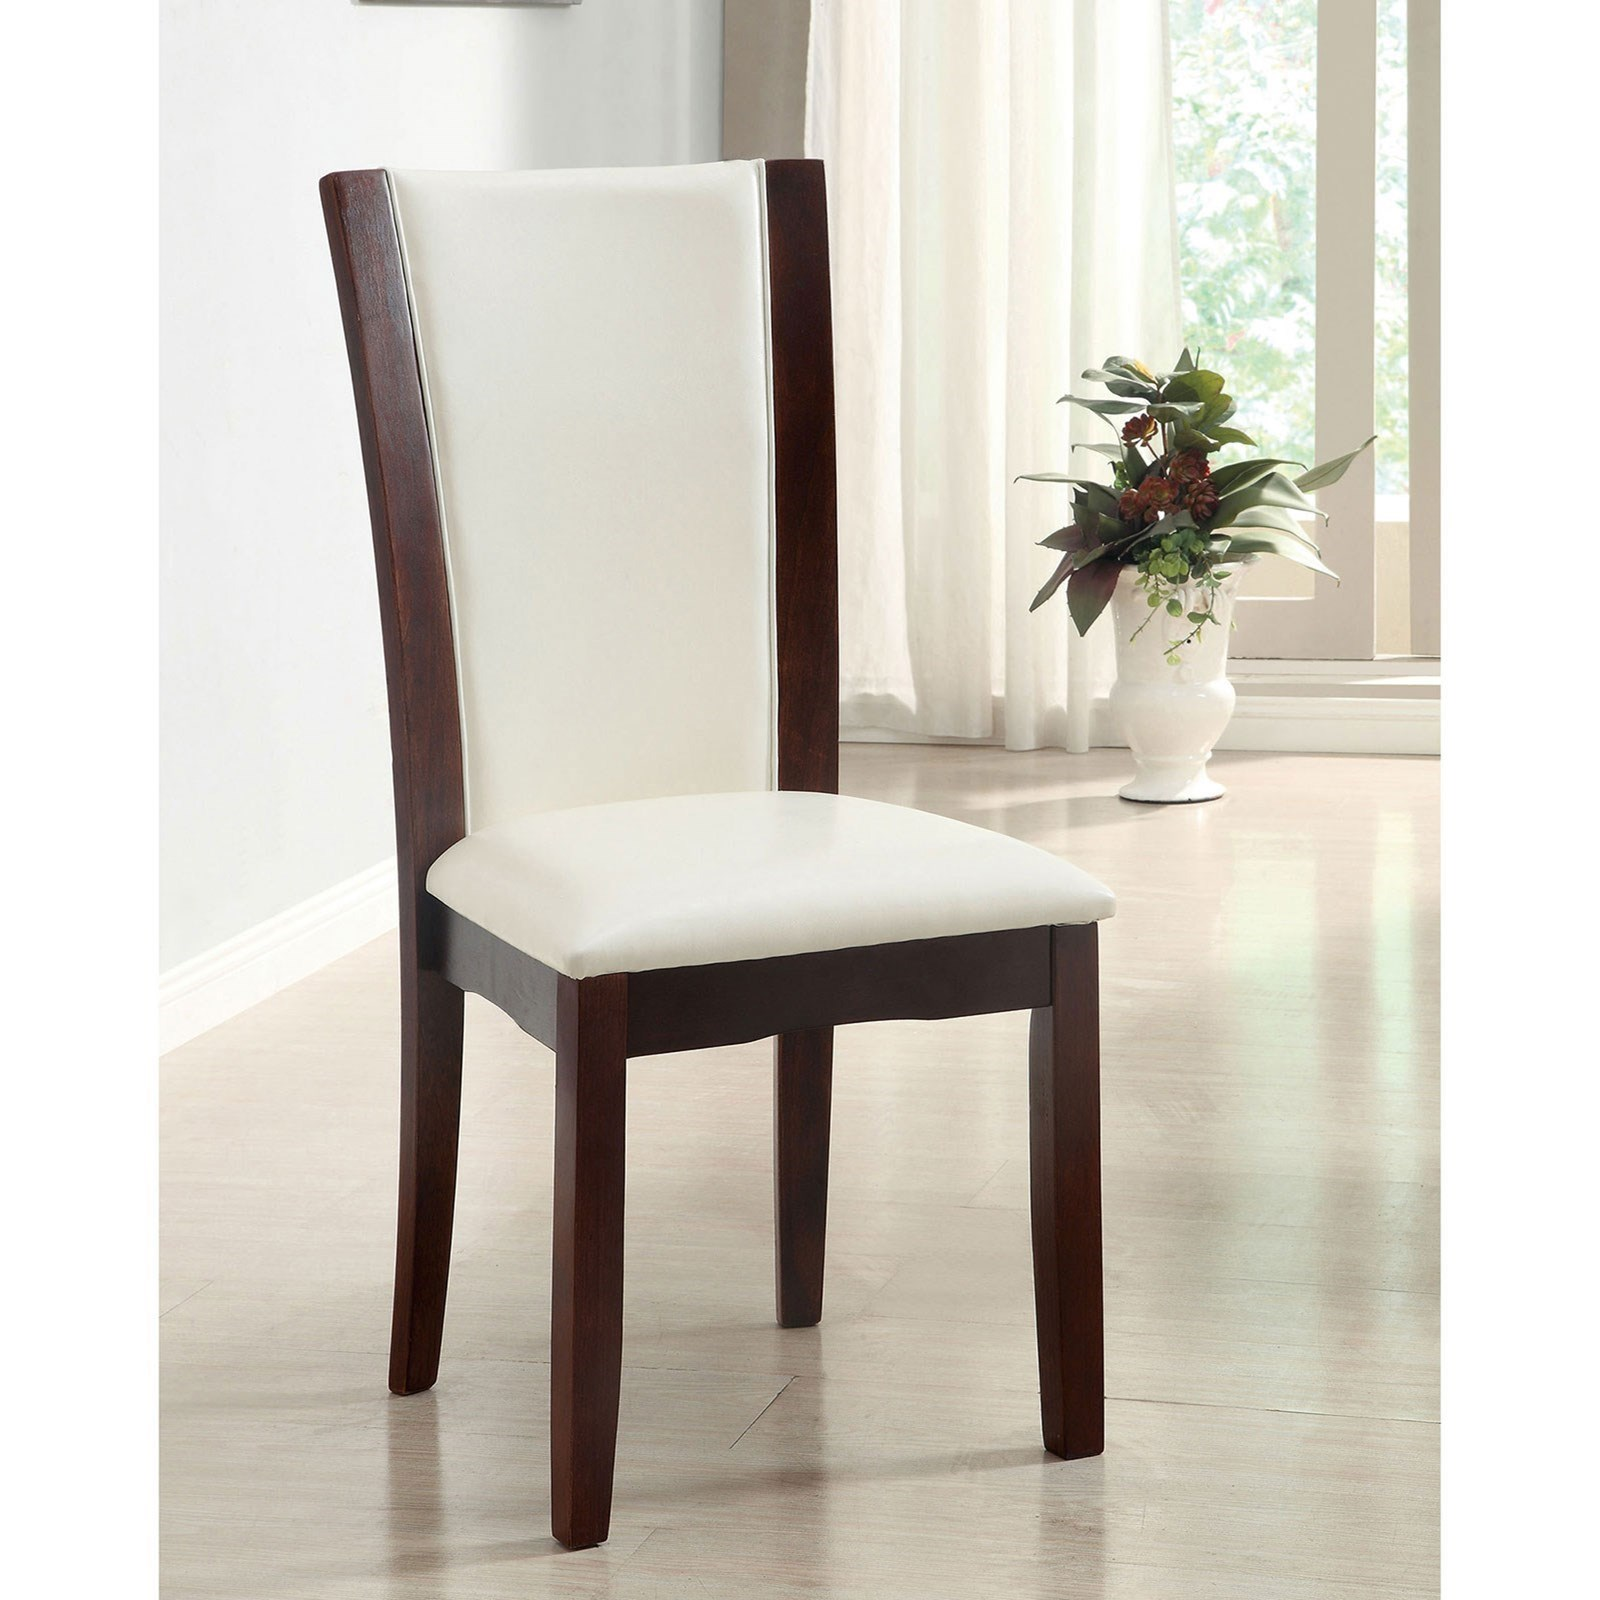 Set of 2 Side Chairs - Espresso Finish